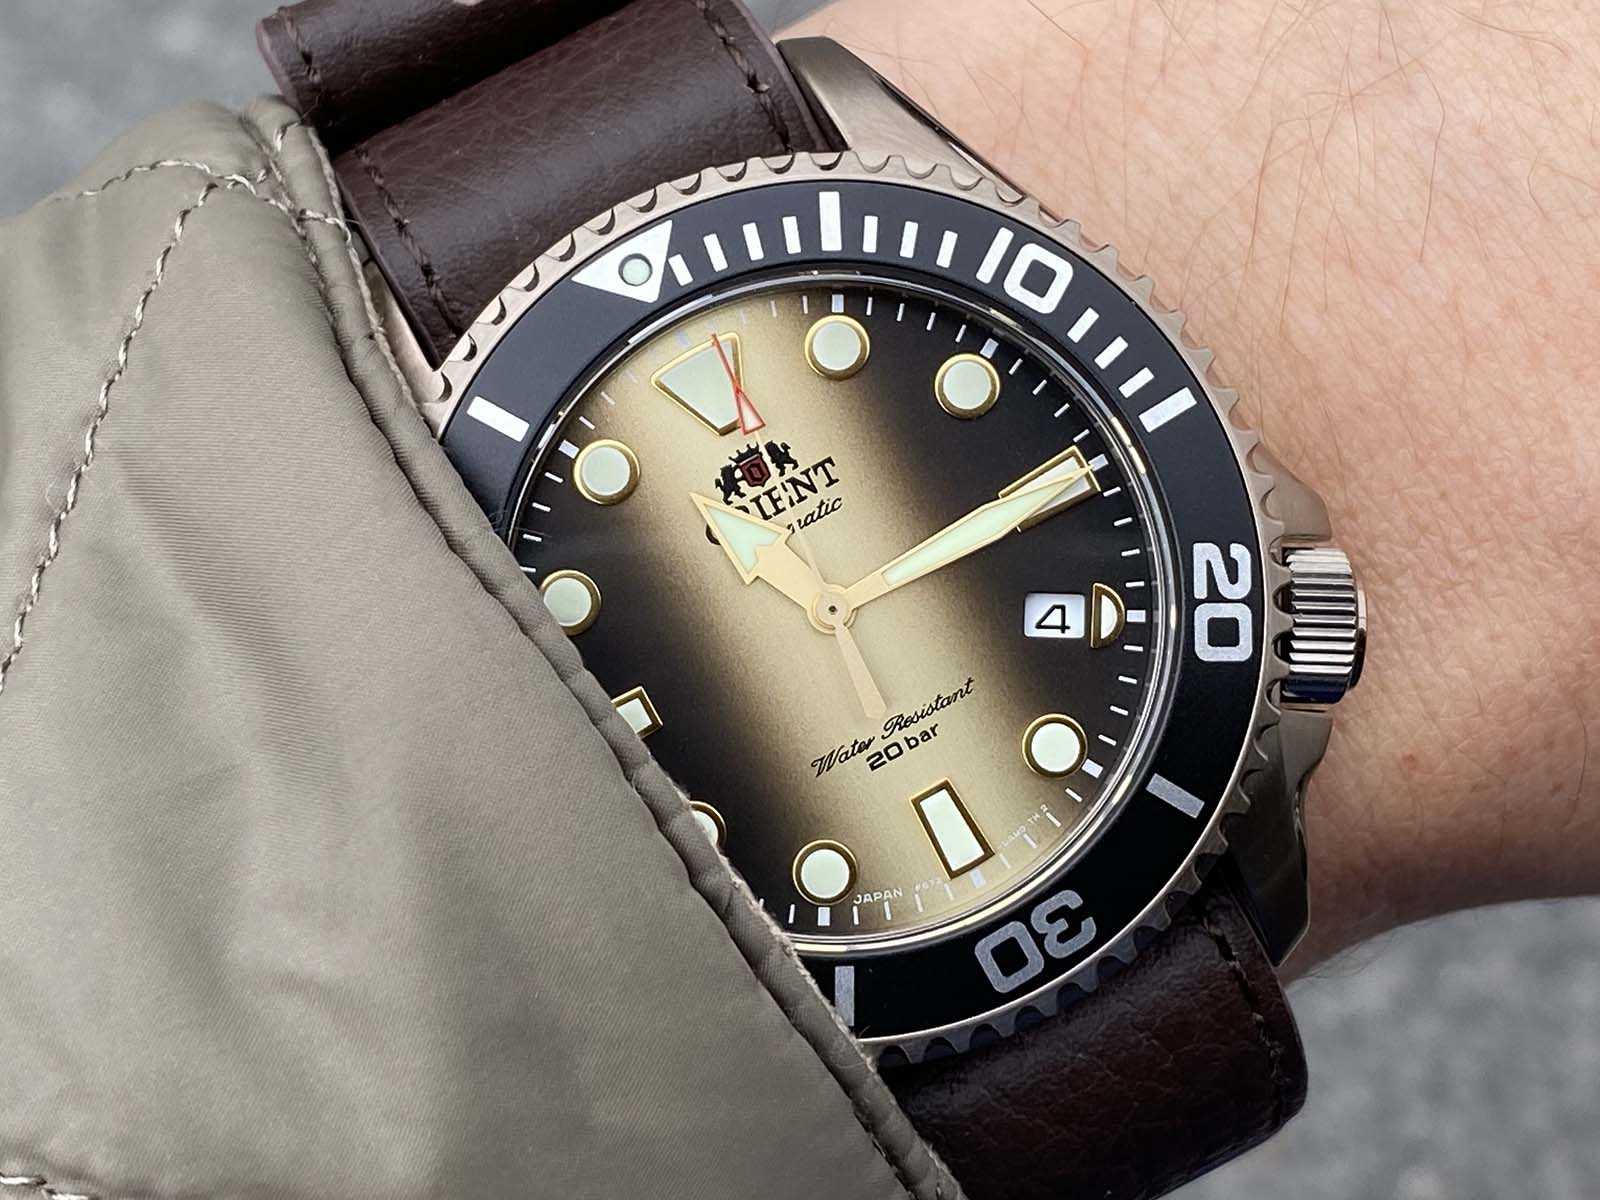 The ORIENT 70th Anniversary Limited Edition is an impressive diver's watch.